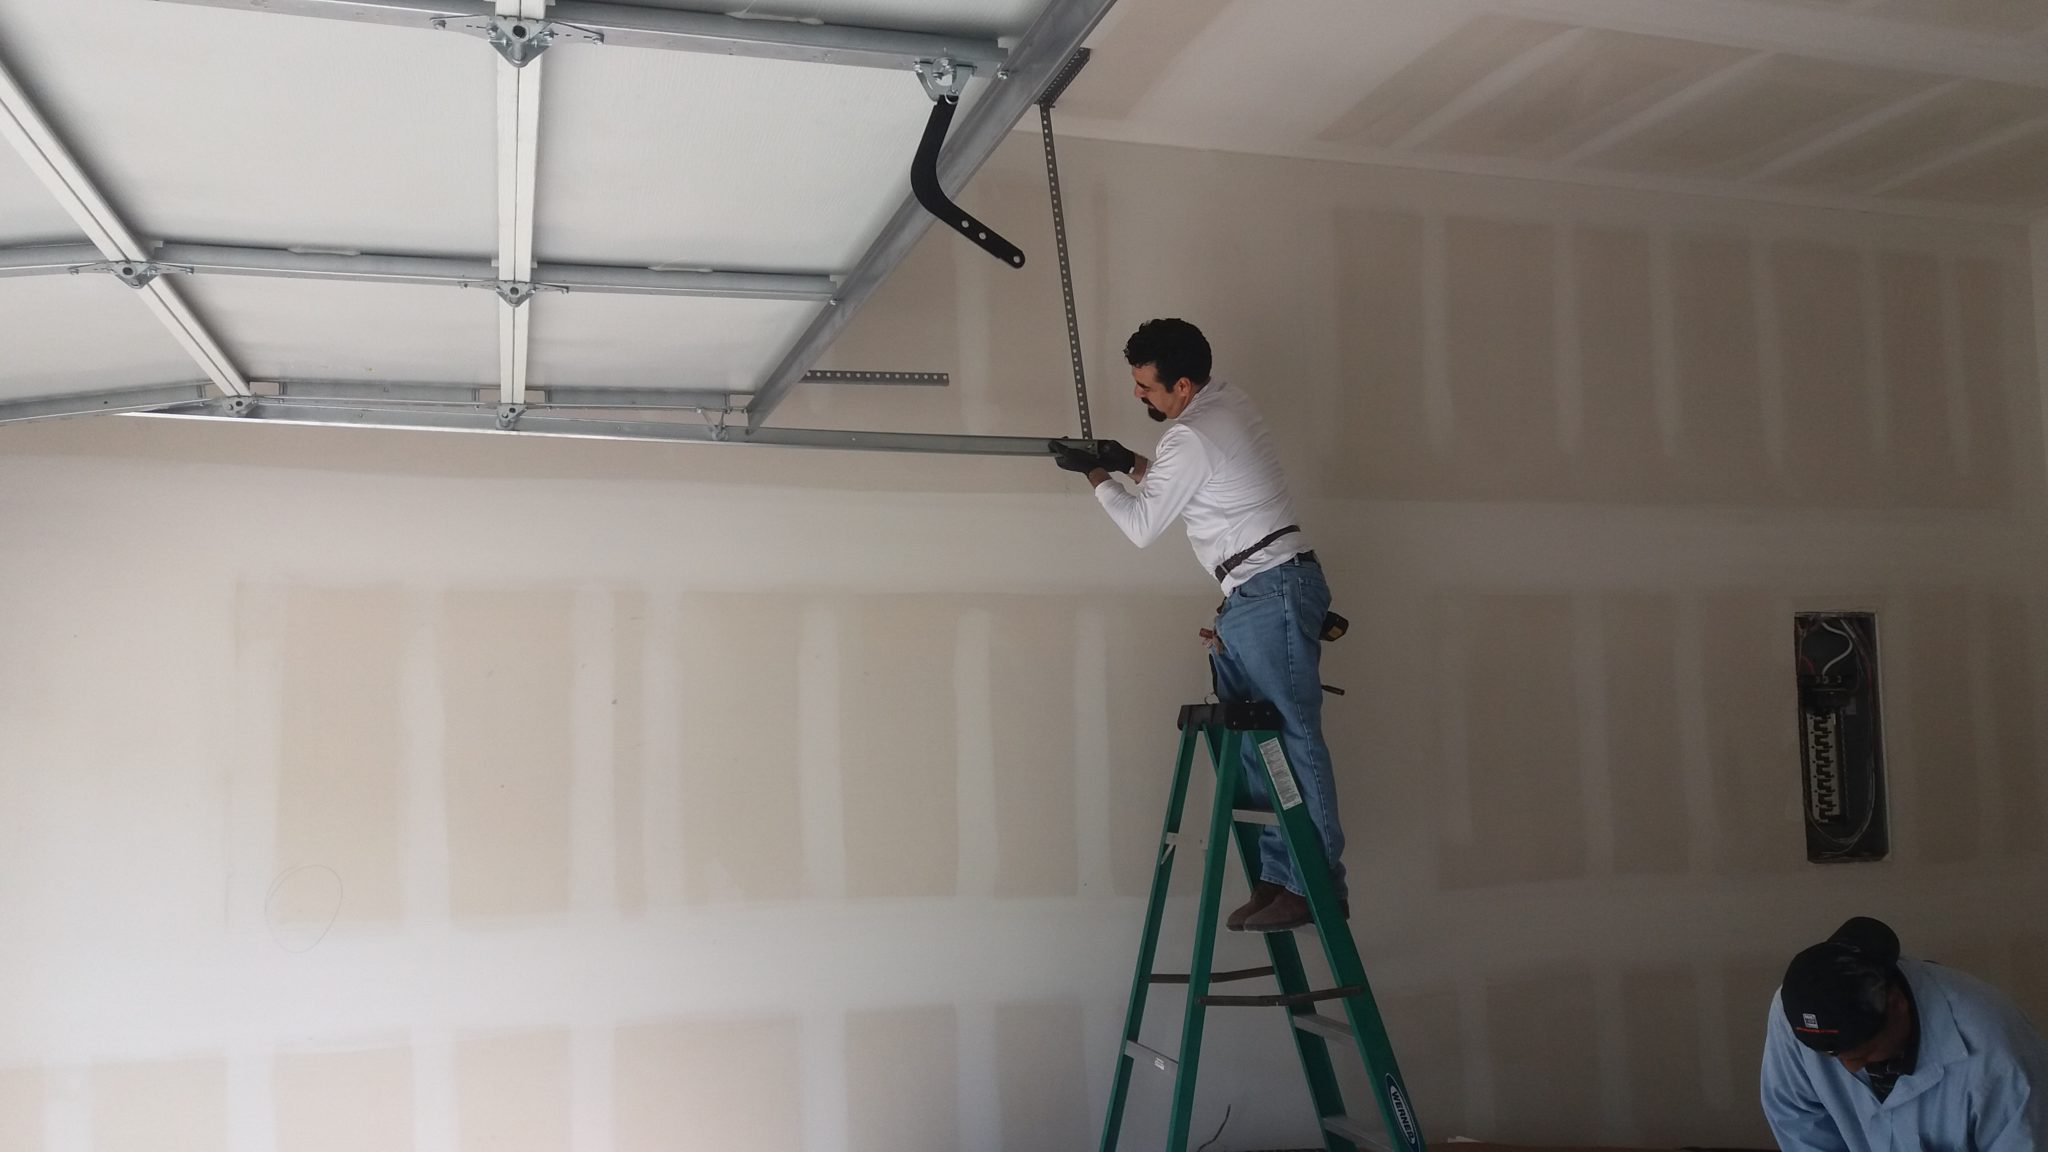 Garage Door Opener Repair in Austin, TX